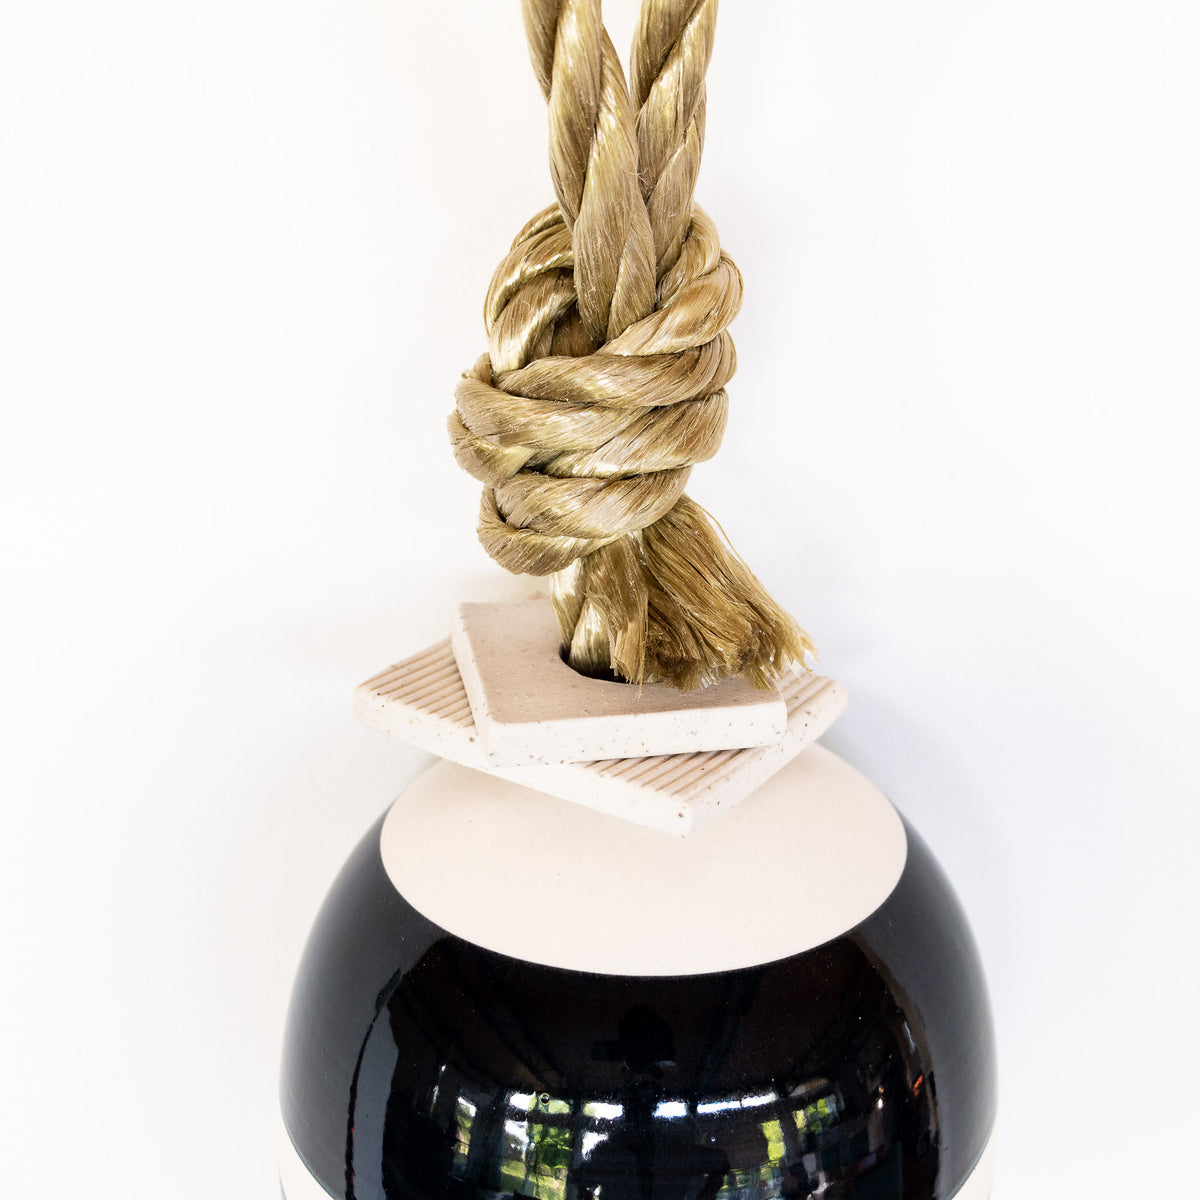 Detail - Small Dark Marine & White Hanging Decorative Buoy - Sold by Chic & Basta